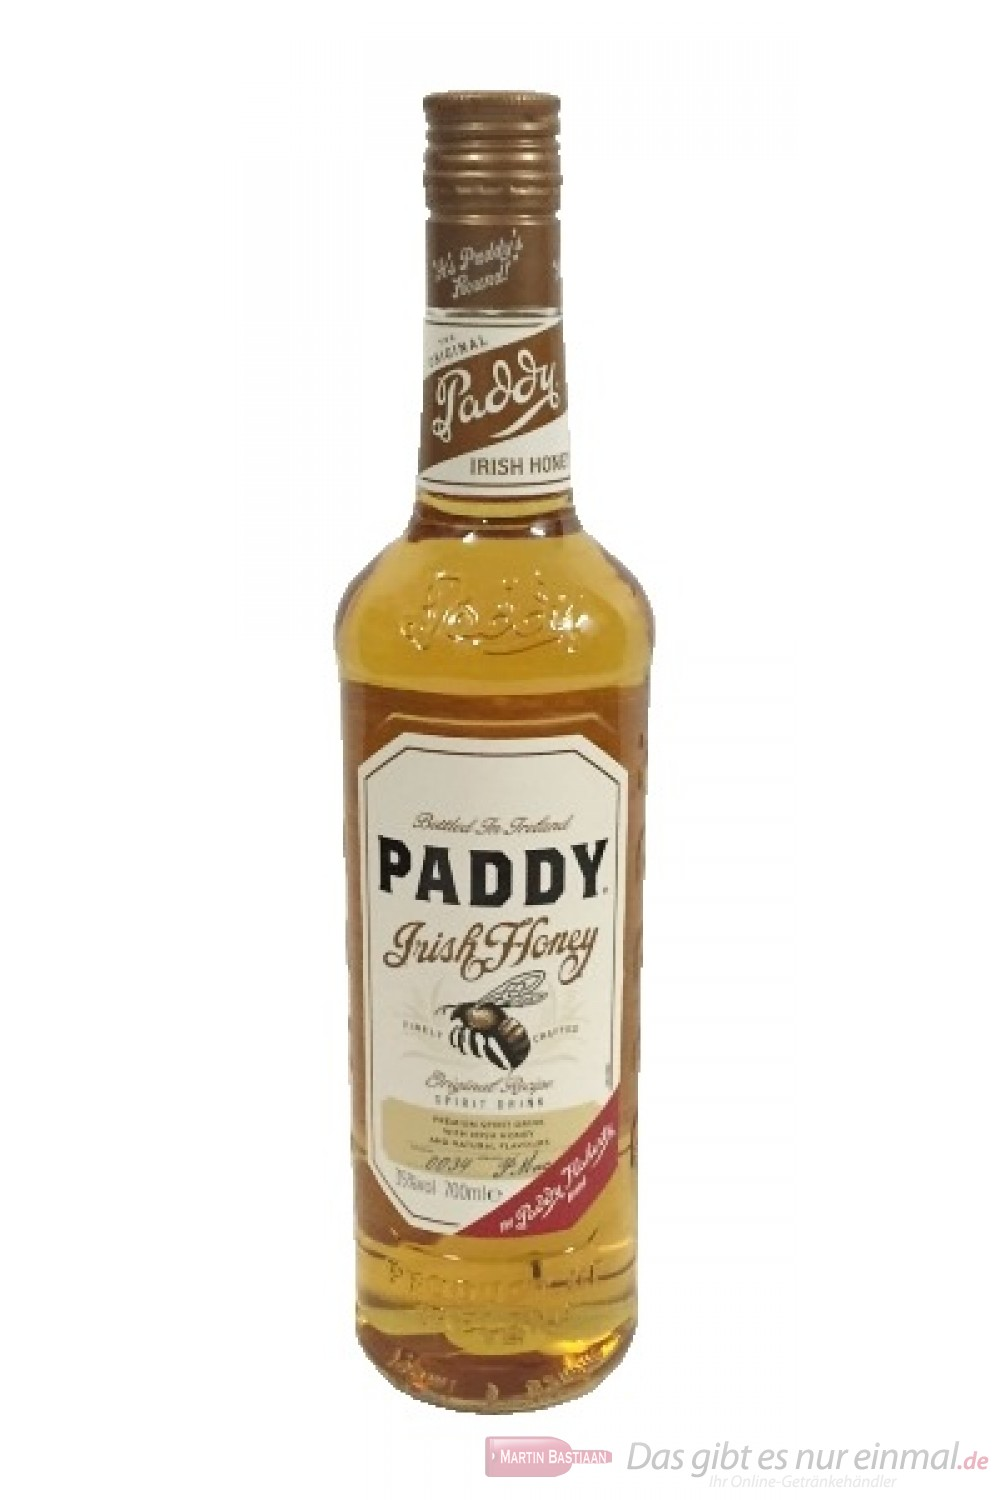 Paddy Irish Honey